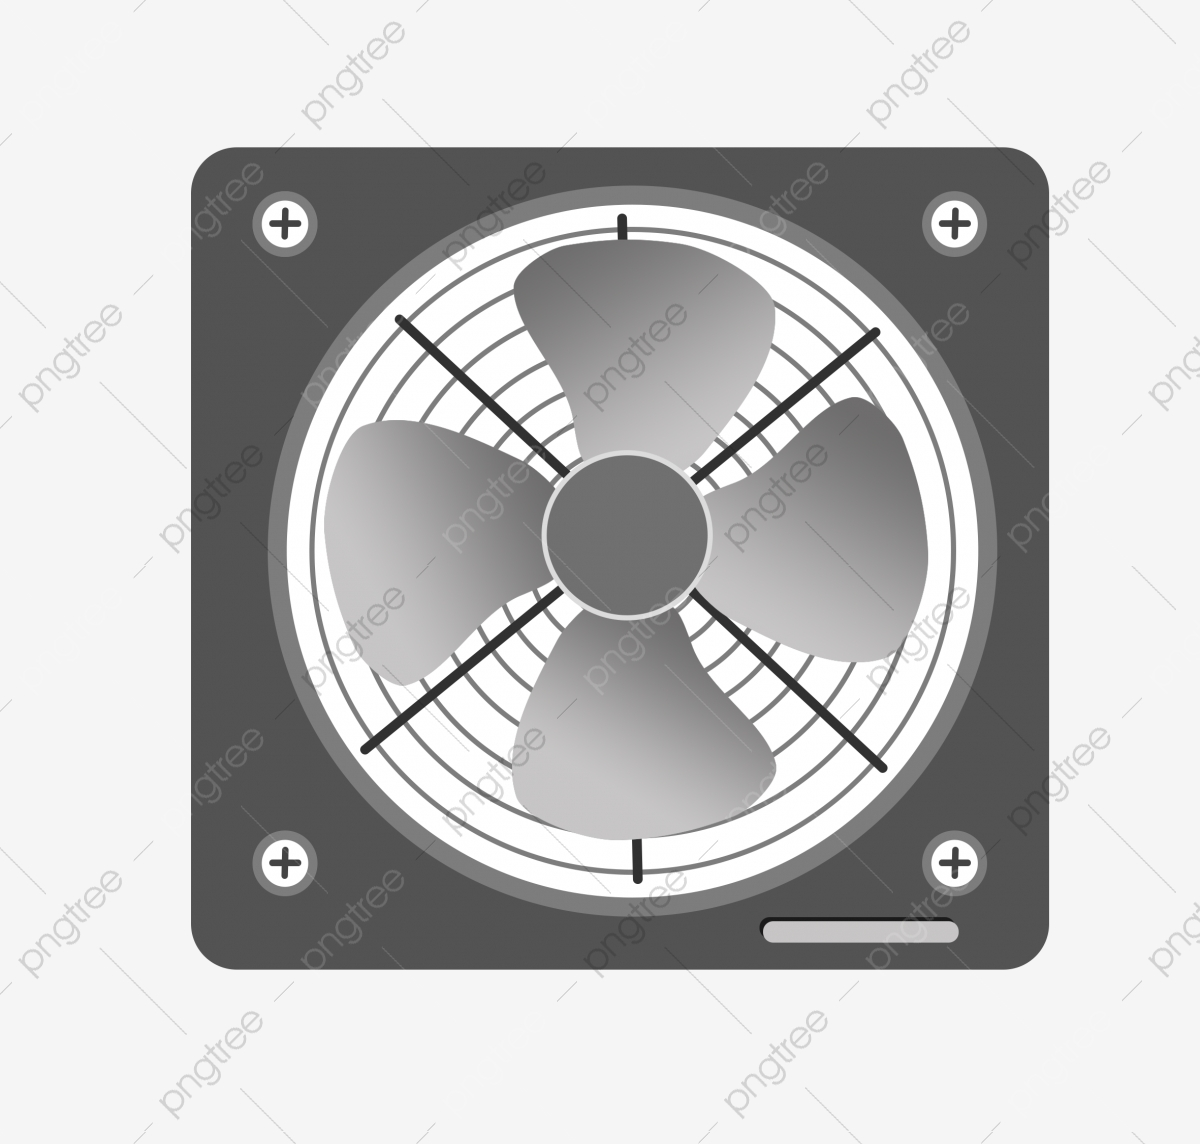 Cool Cool Fan Exhaust Fan Black Illustration Fan Imagem Png E Psd Para Download Gratuito